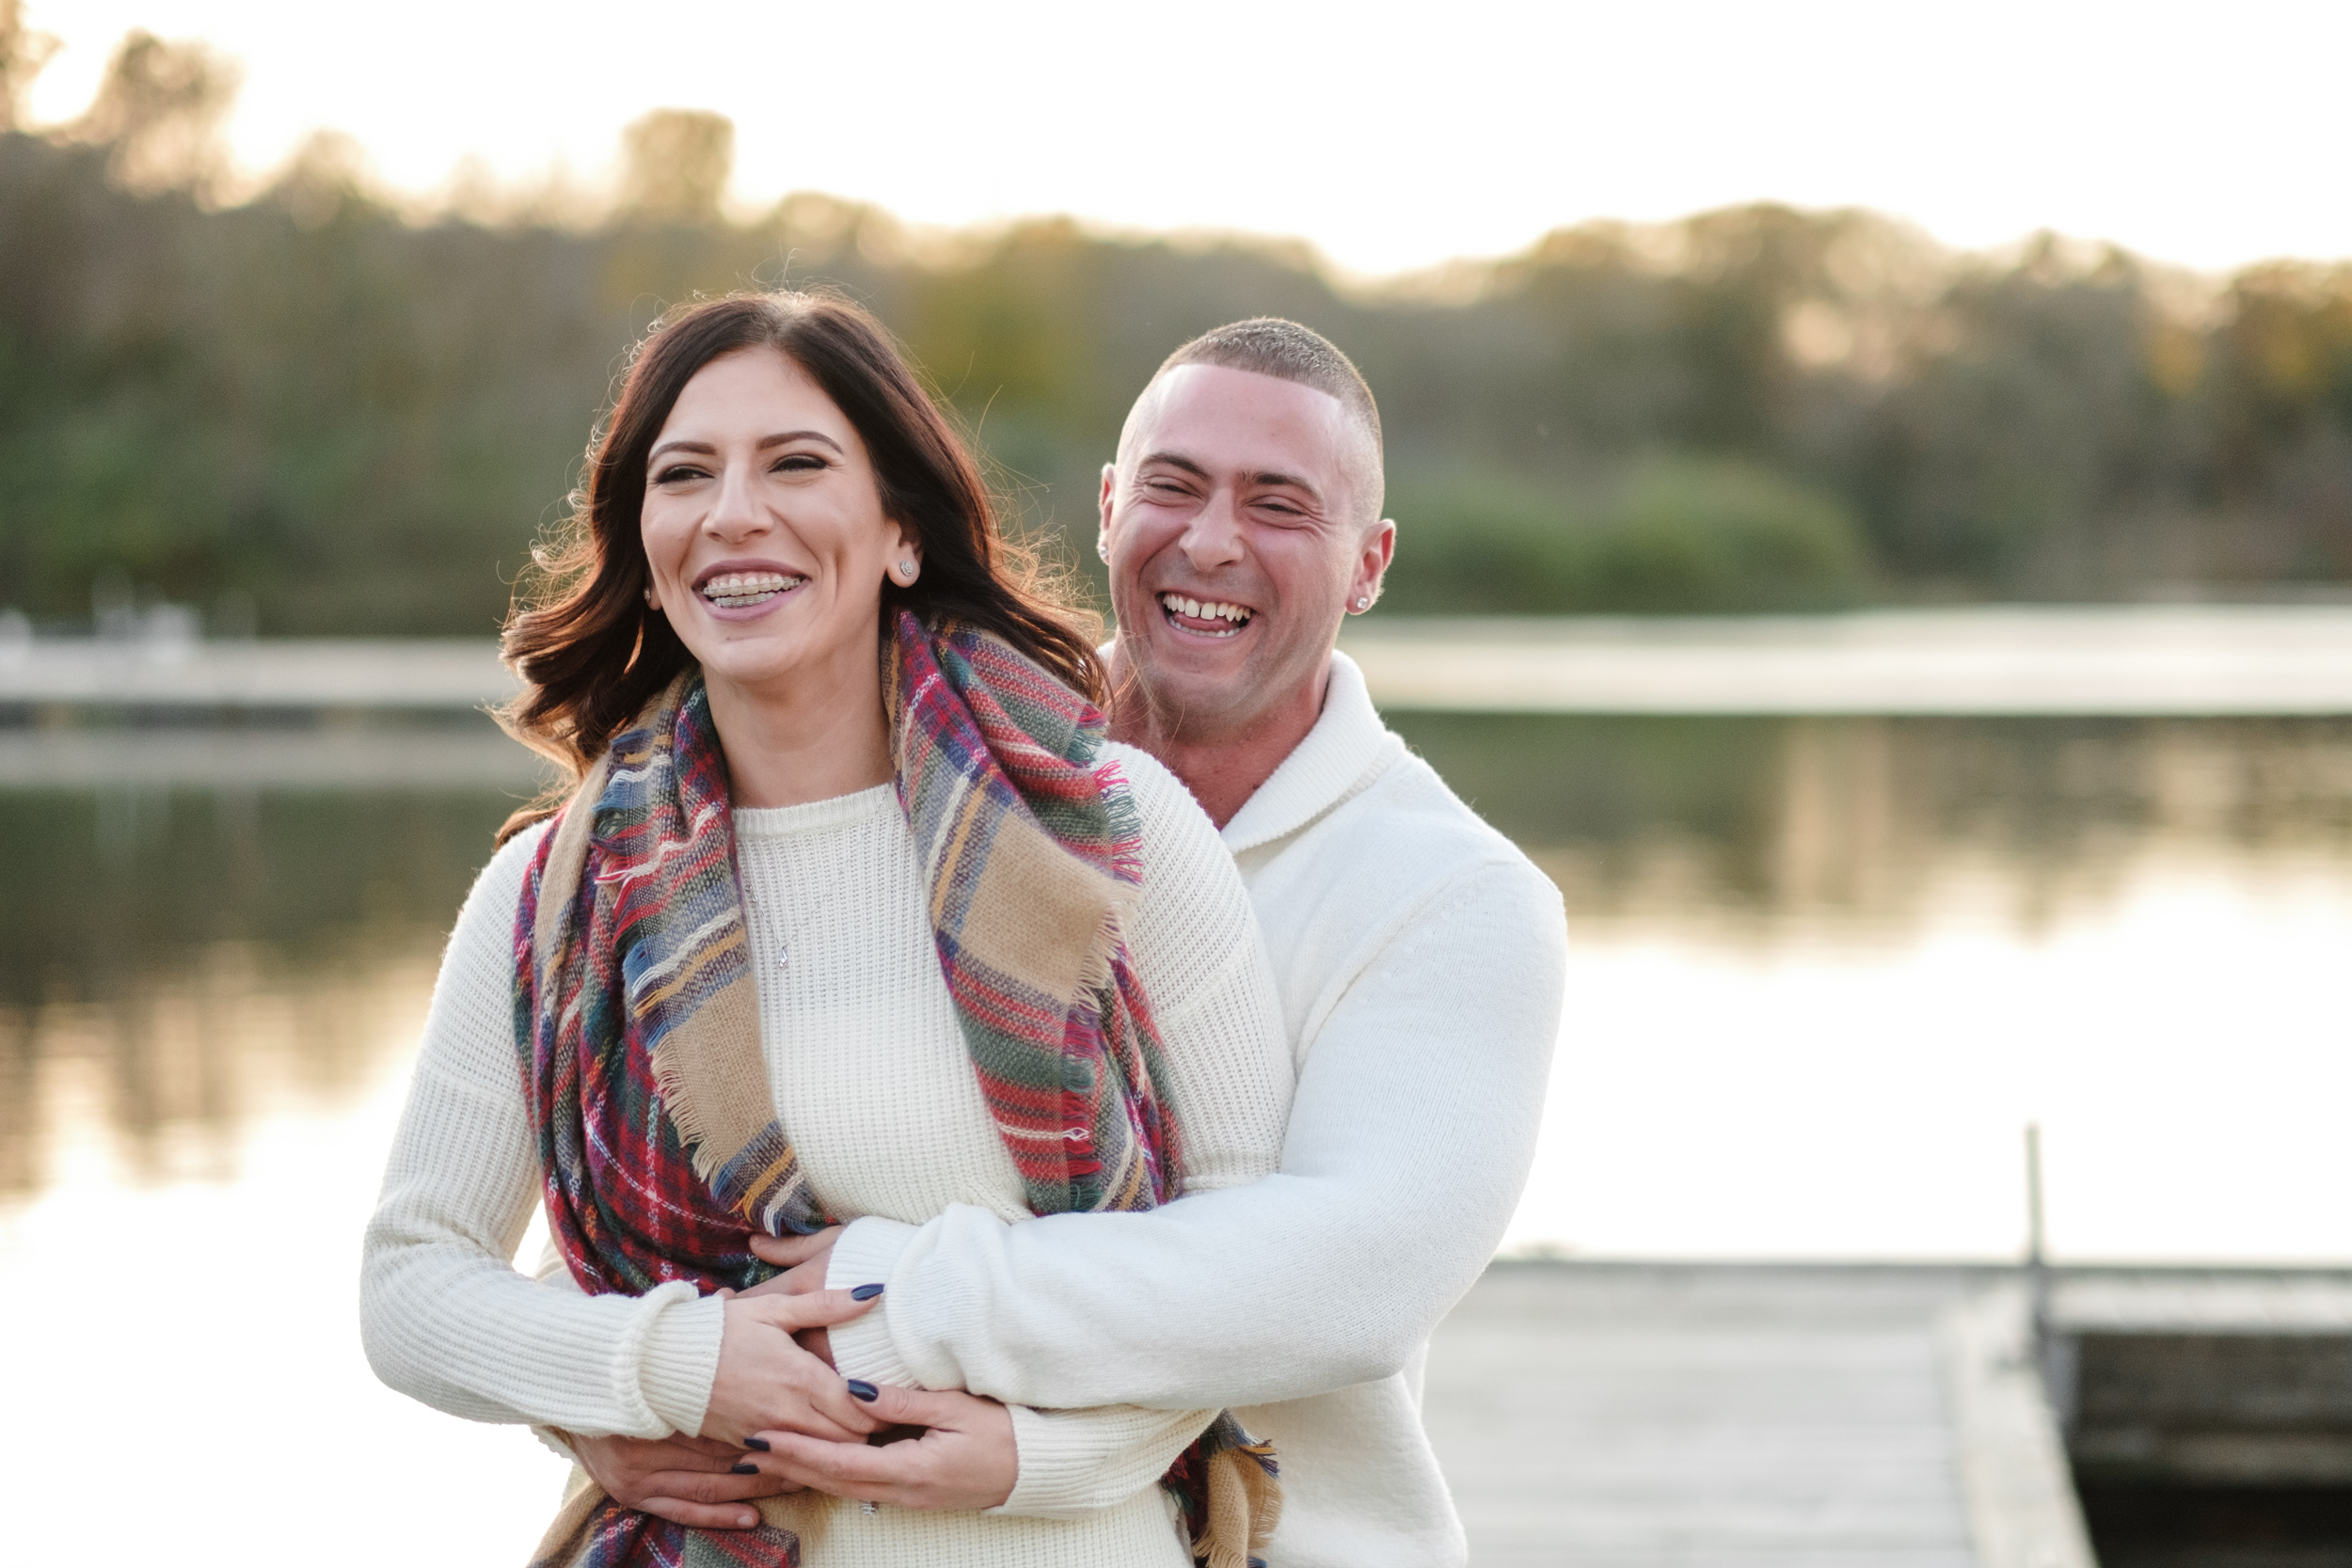 natural light photography at sunset Rockford, IL engagement